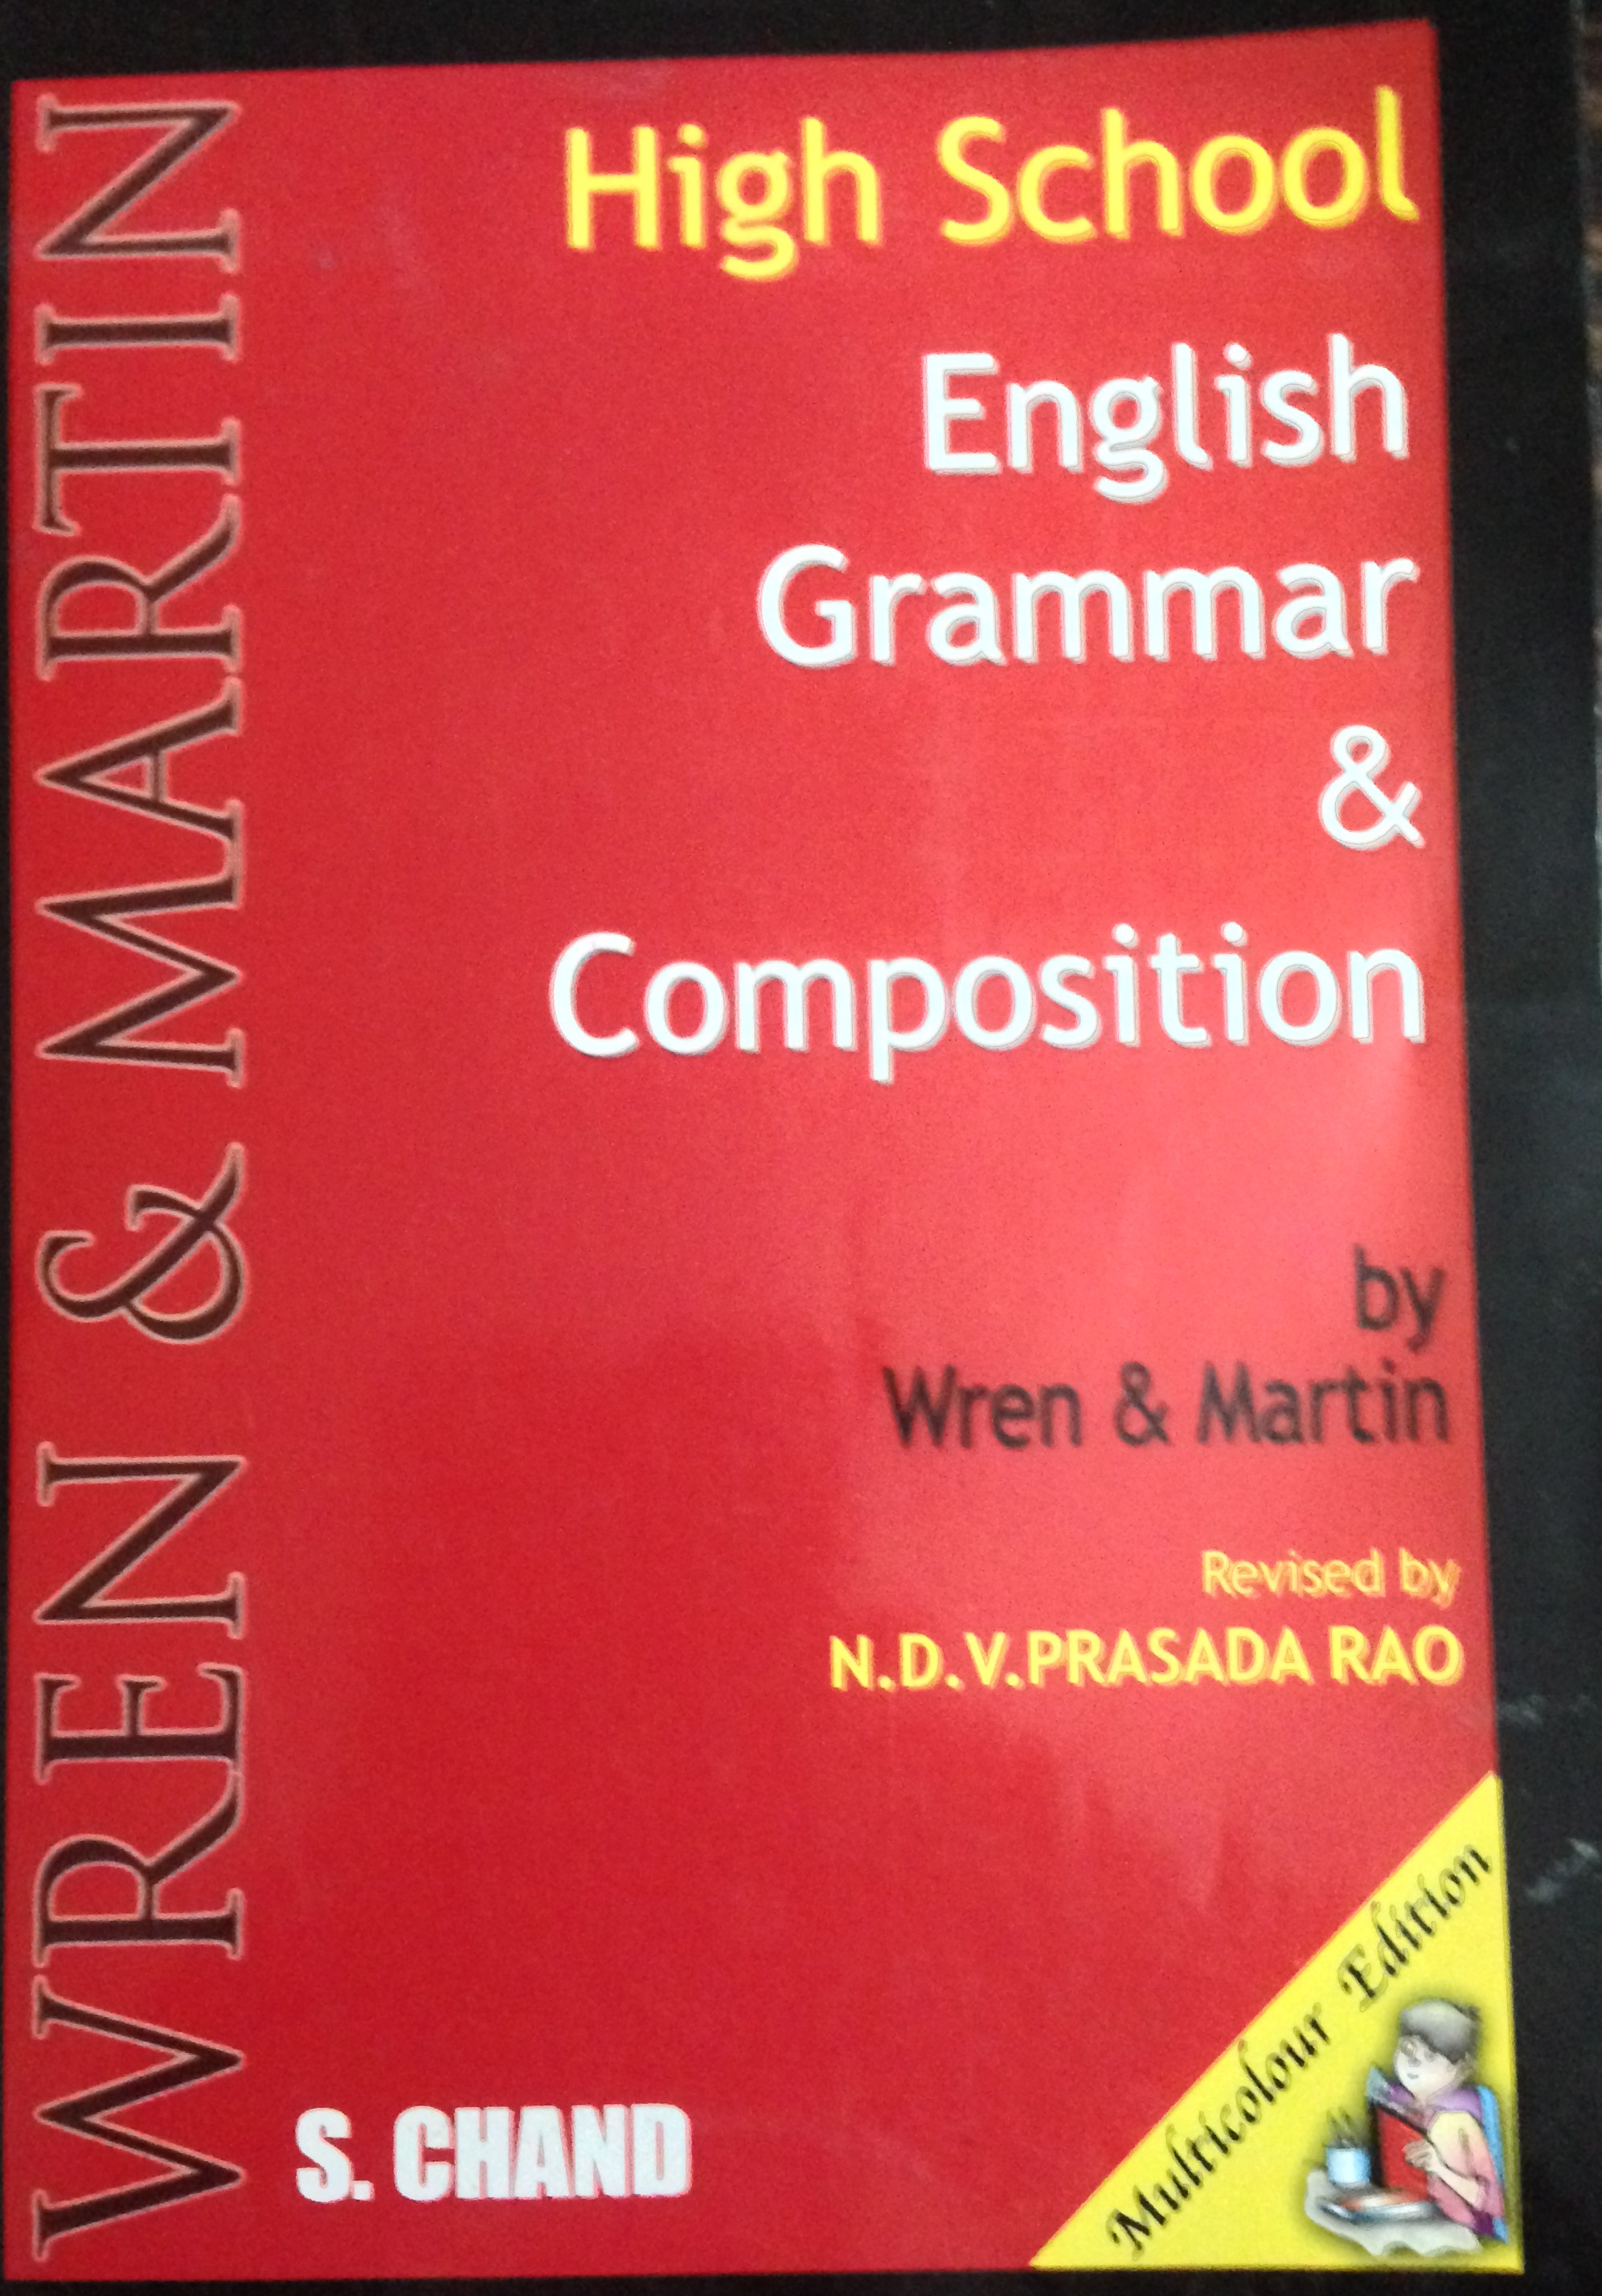 Rain And Martin English Grammar Book Pdf